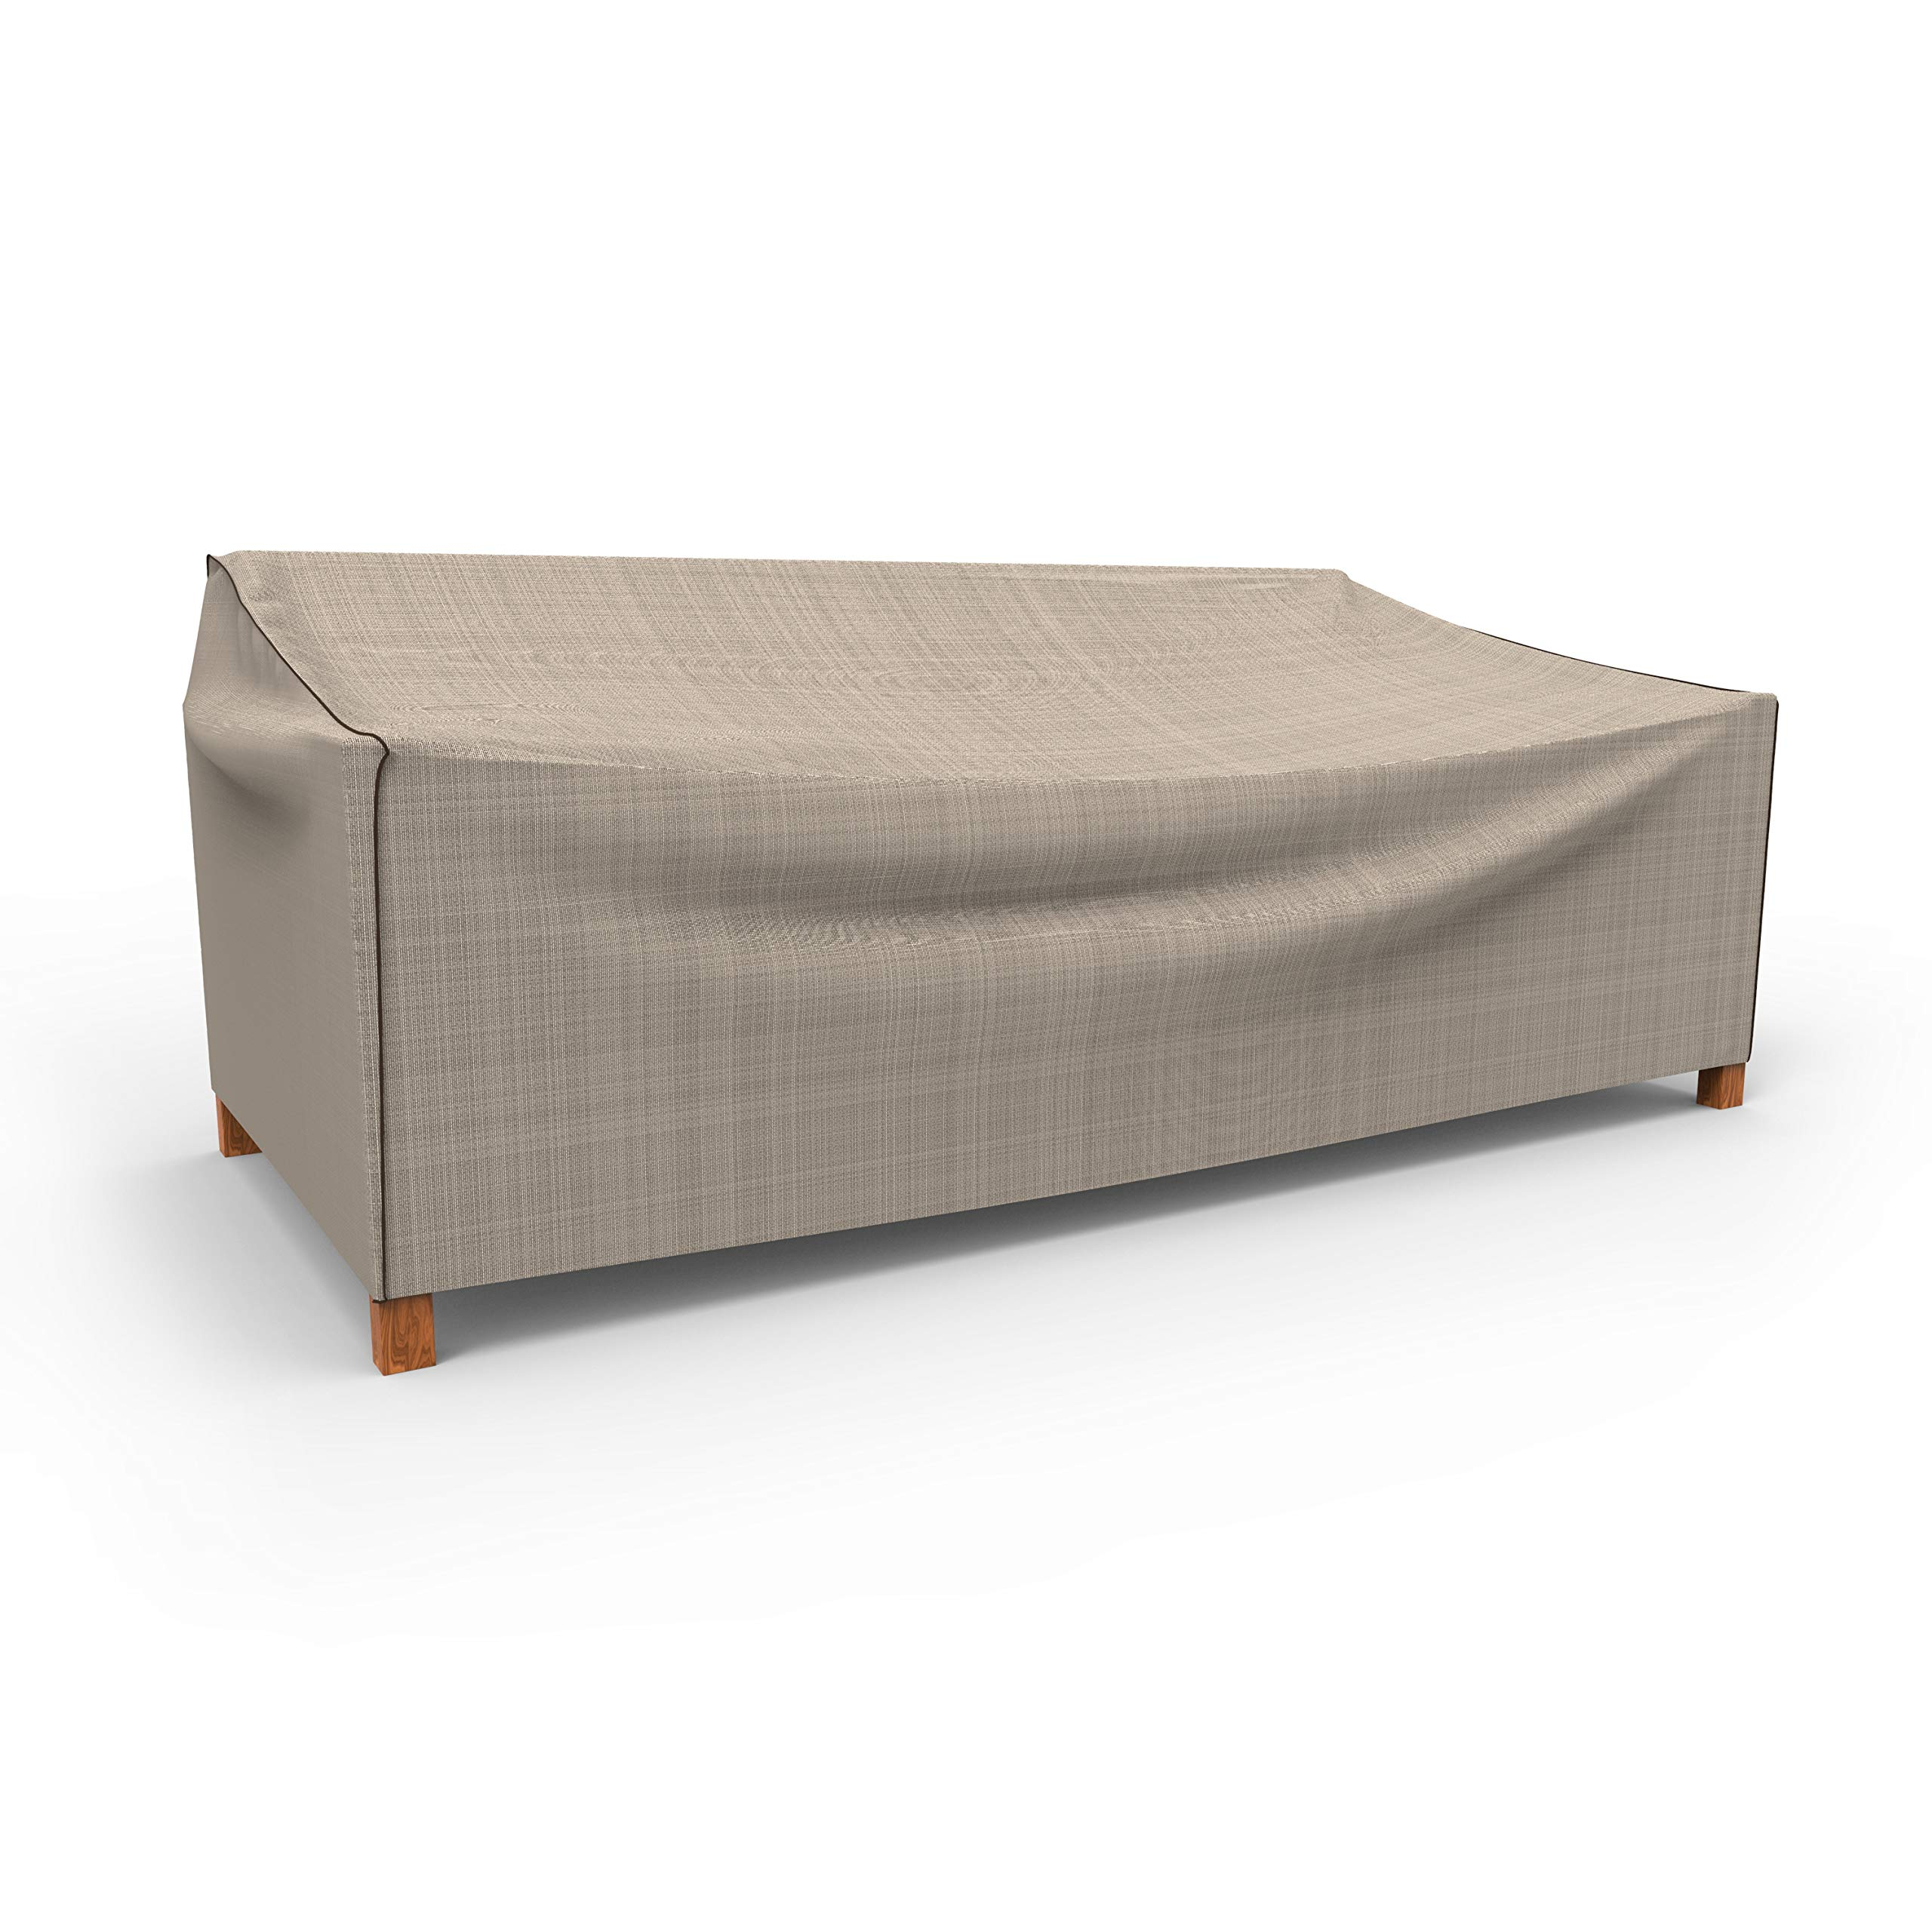 EmpireCovers NeverWet Signature Outdoor Patio Sofa Cover, Large - Black Ivory, P3W04PMNW2